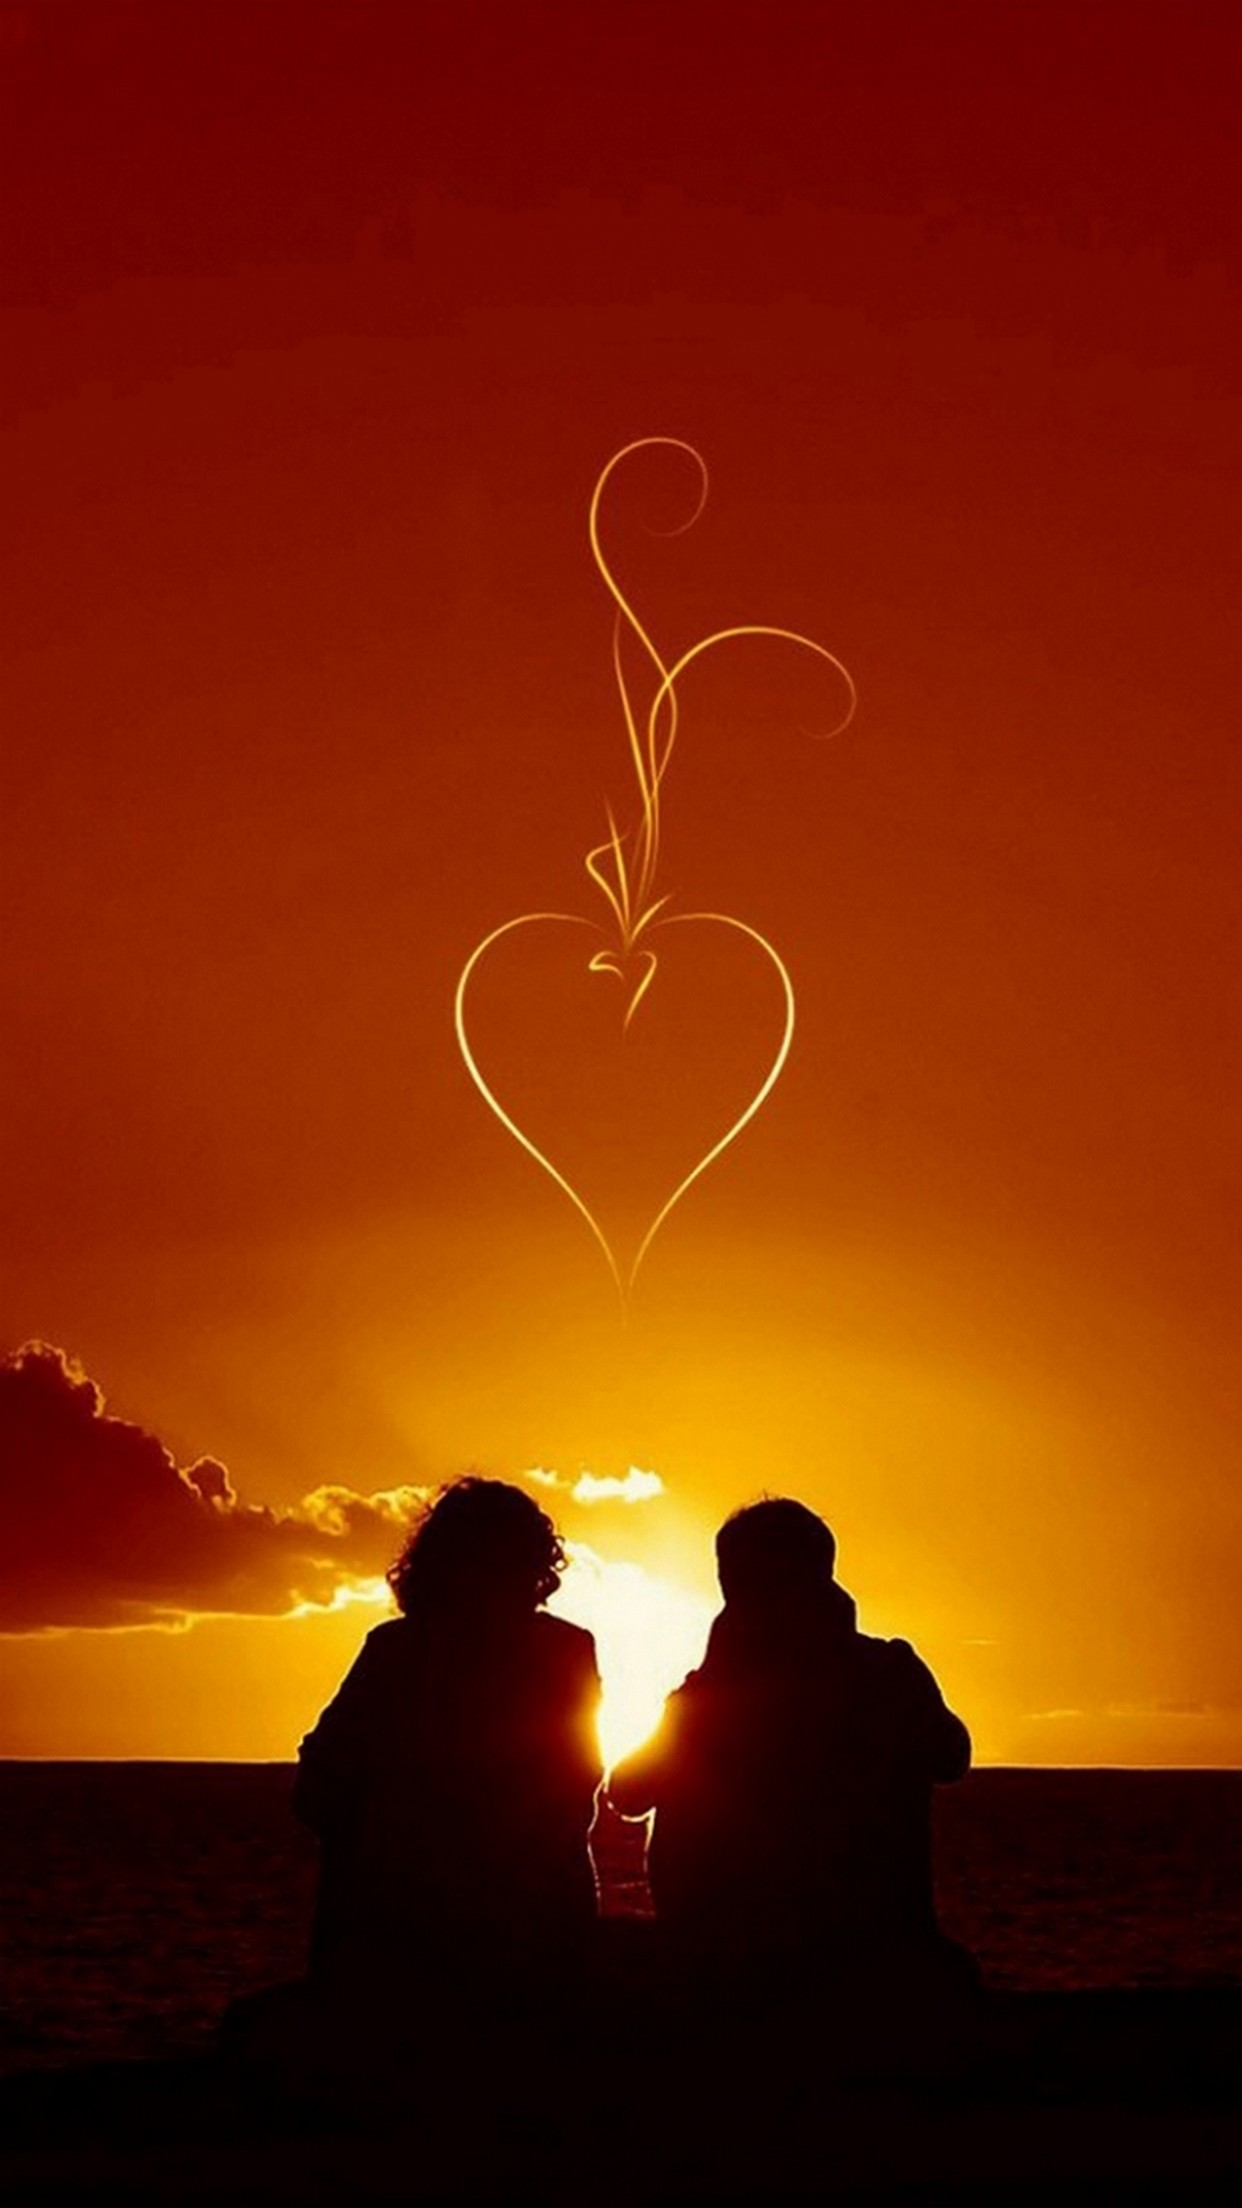 Love Wallpaper Hd 2012 : Love Wallpapers Images ??